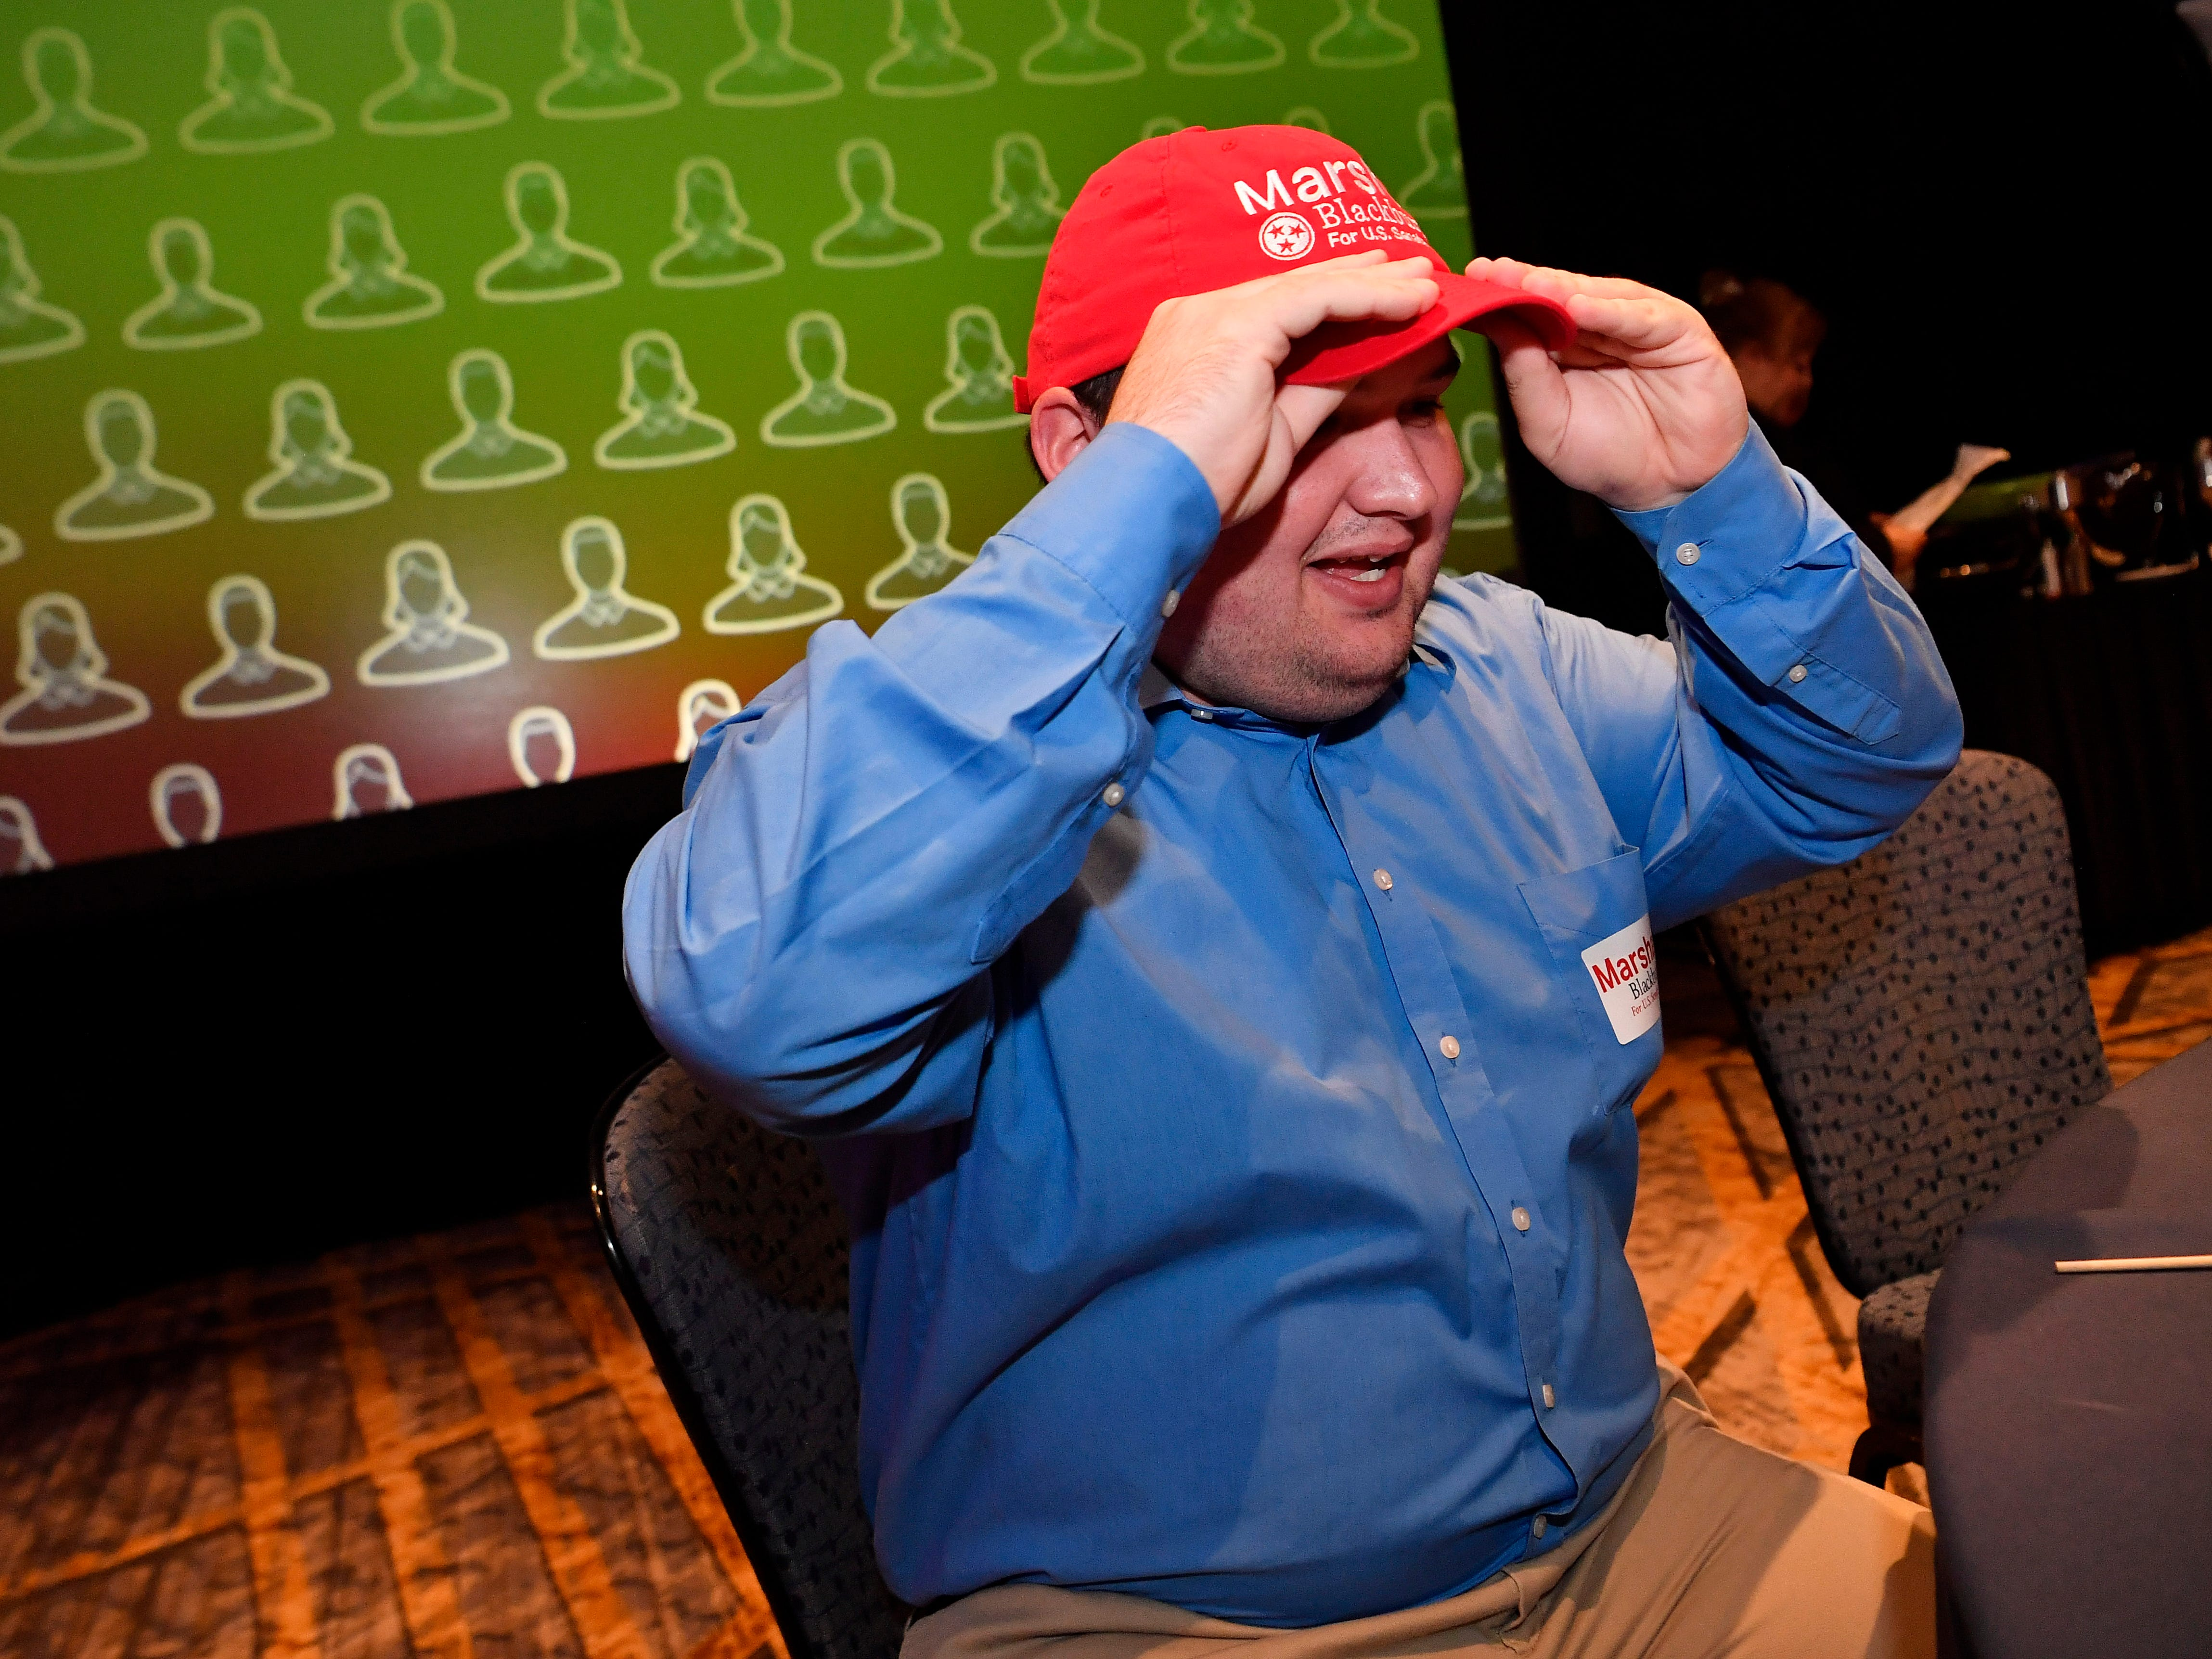 Joe Byrne adjusts his Marsha Blackburn hat during the election night watch party for the Republican U.S. Senate candidate Tuesday, Nov. 6, 2018, in Franklin, Tenn.